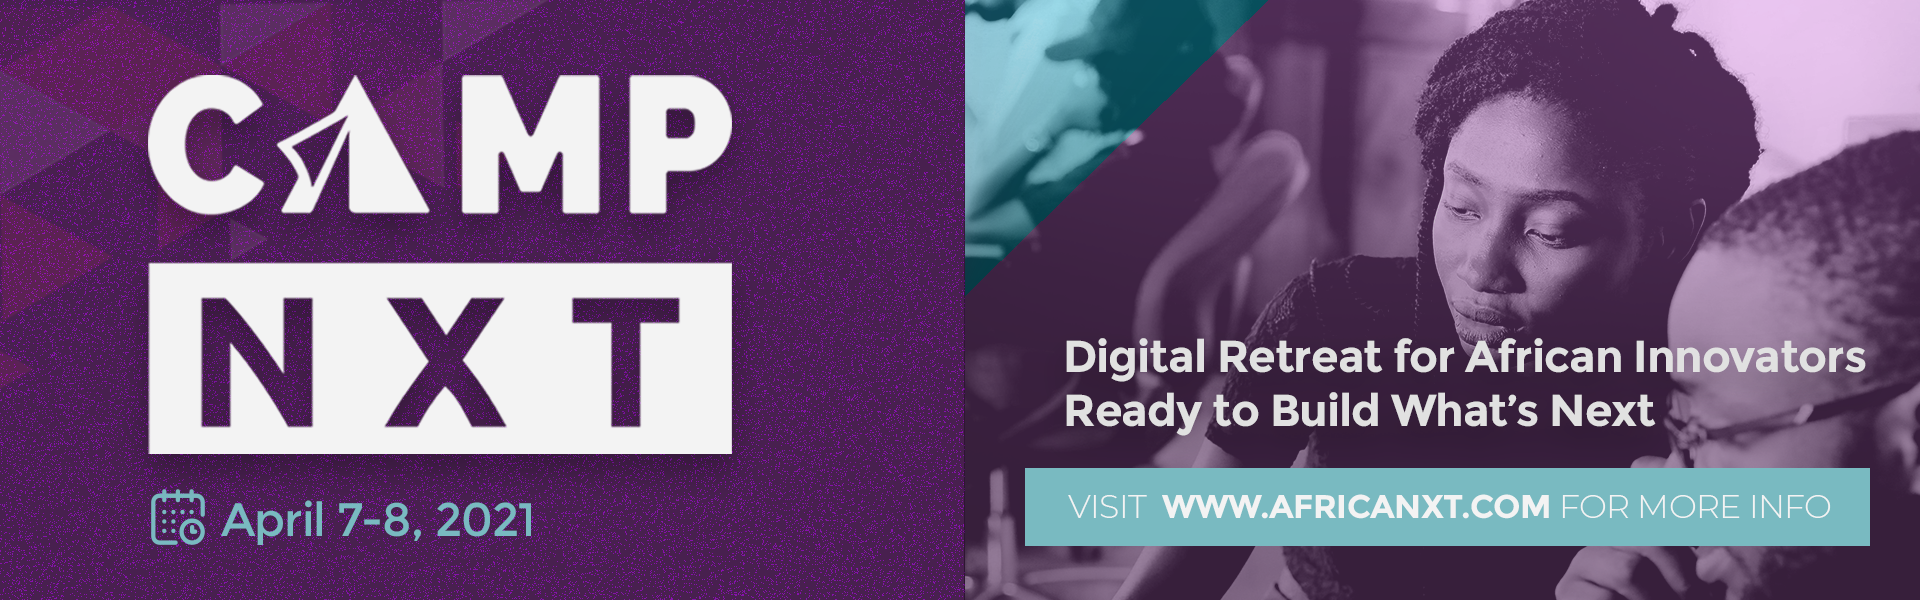 CAMP NXT ... Digital Retreat For African Innovators Ready To Build What's Next